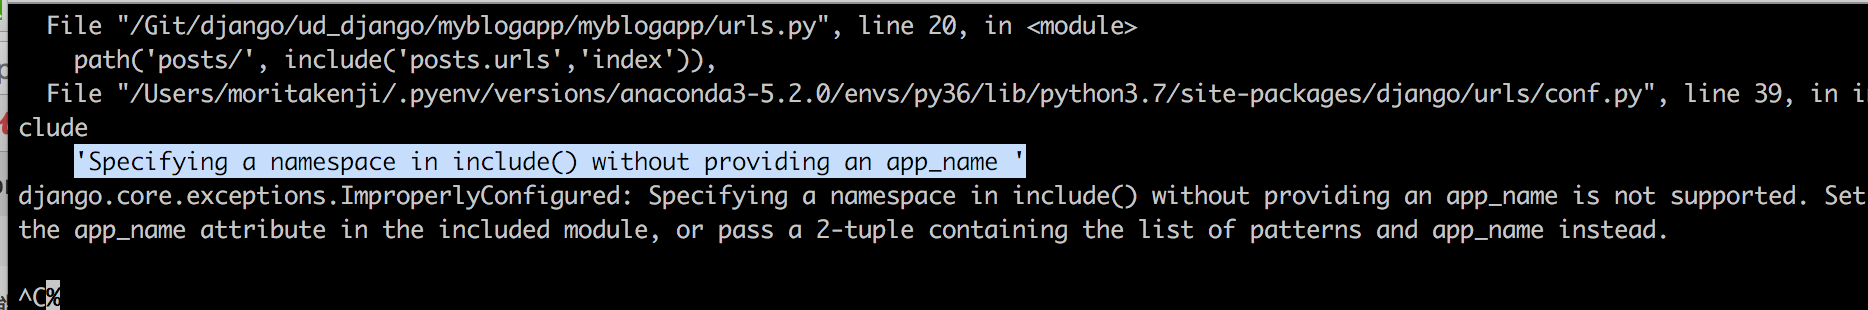 'Specifying a namespace in include() without providing an app_name '